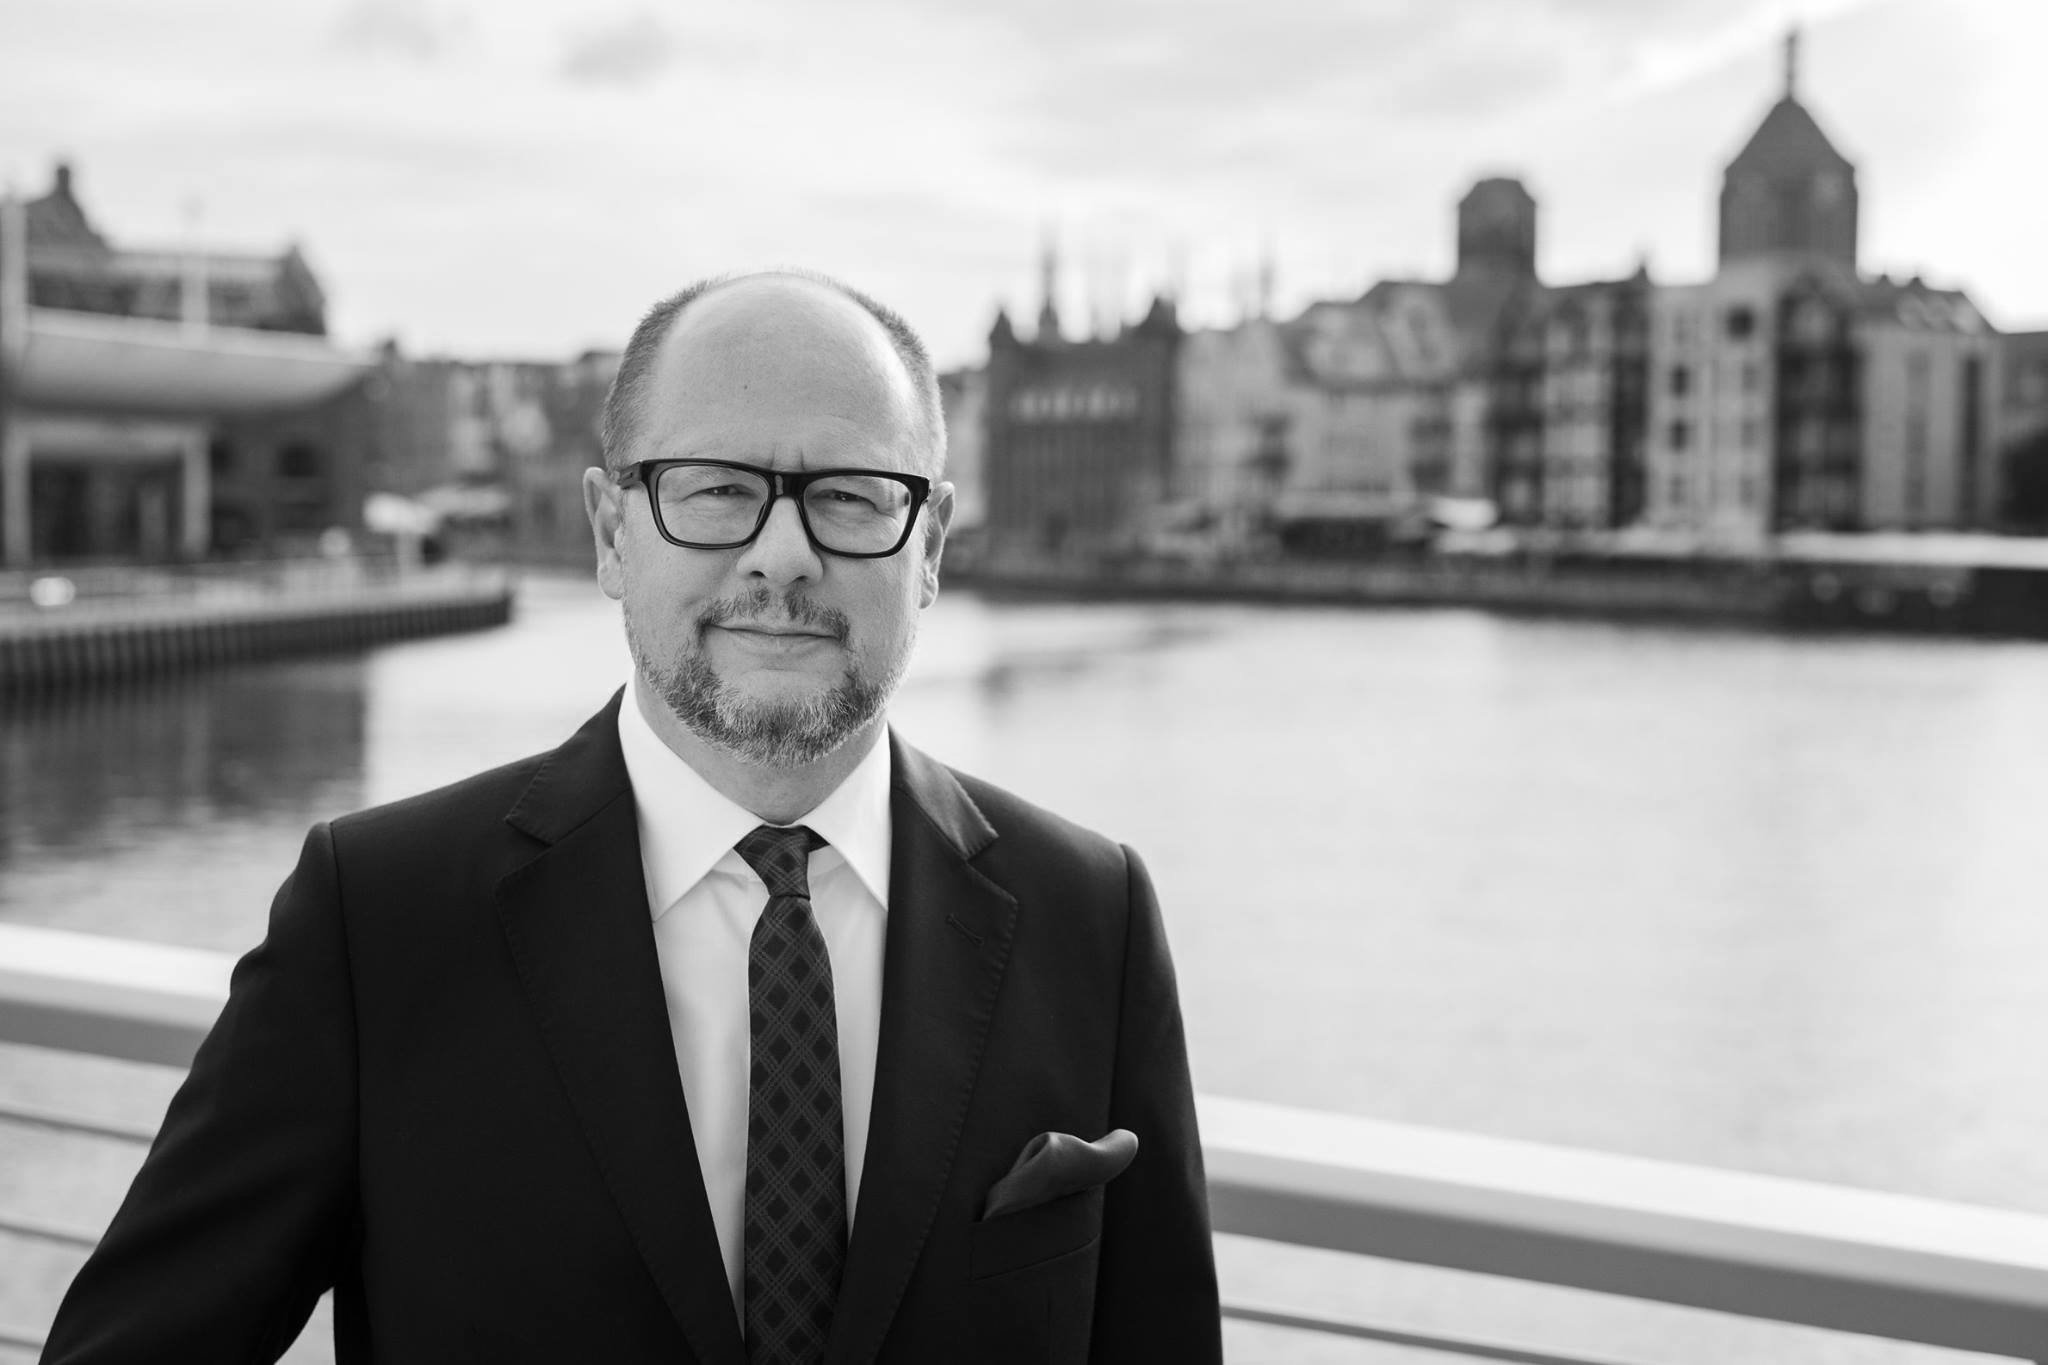 In remembrance of Paweł Adamowicz 1965-2019